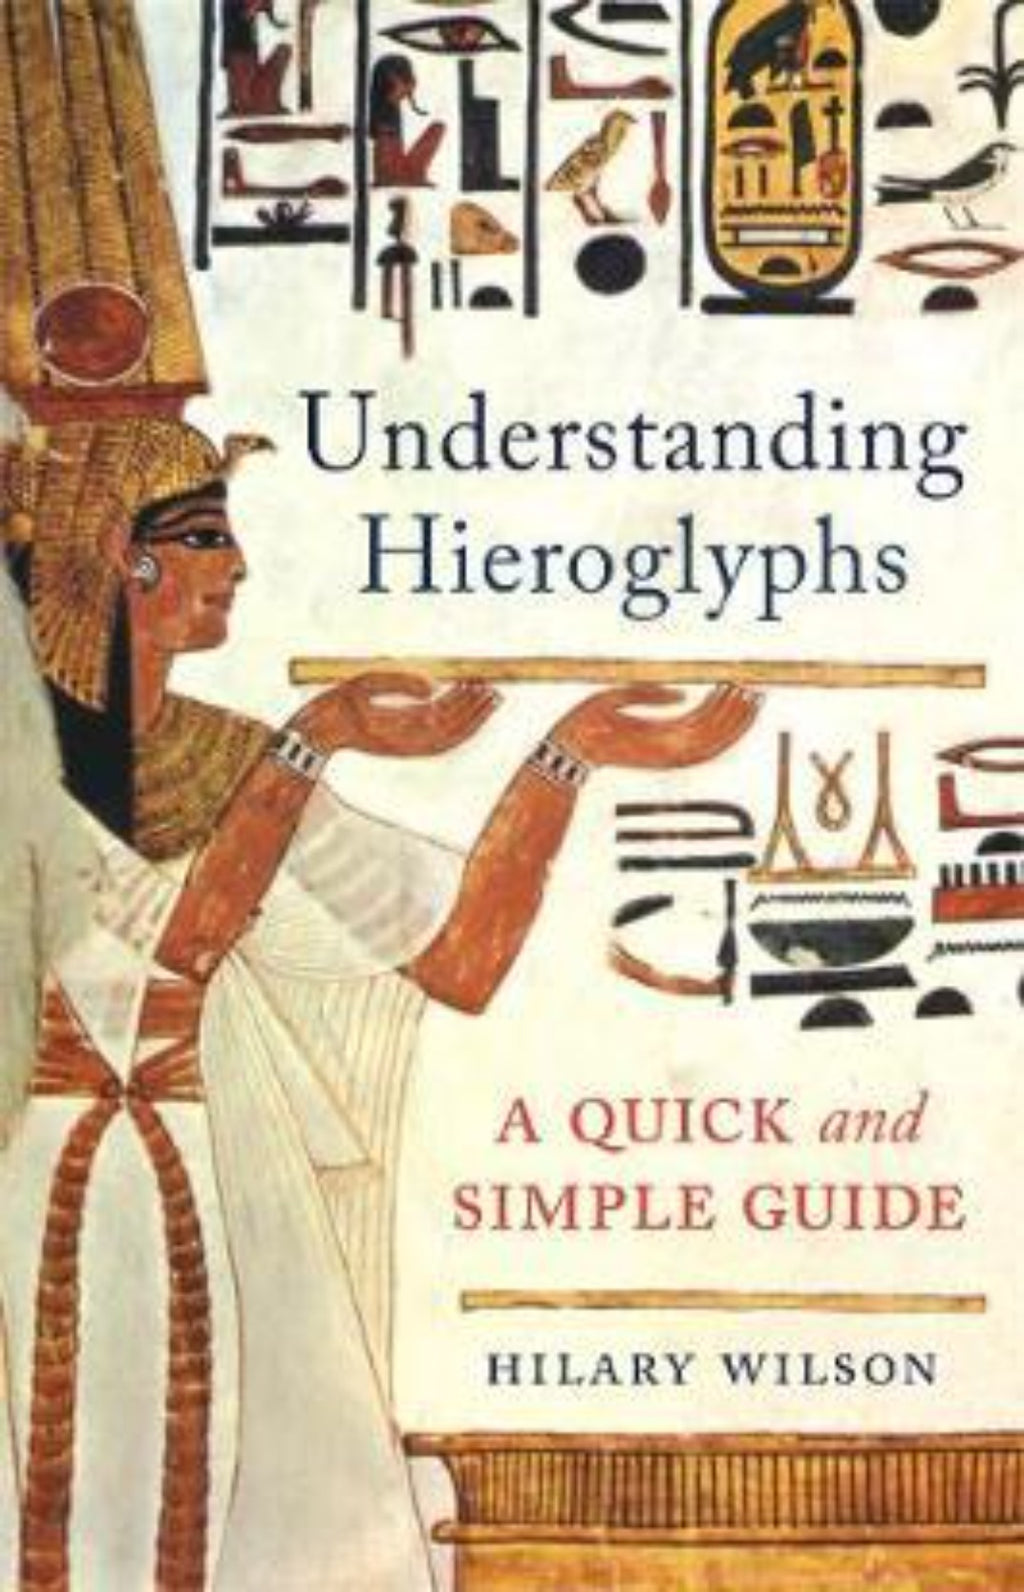 Understanding Hieroglyphs : A Quick and Simple Guide